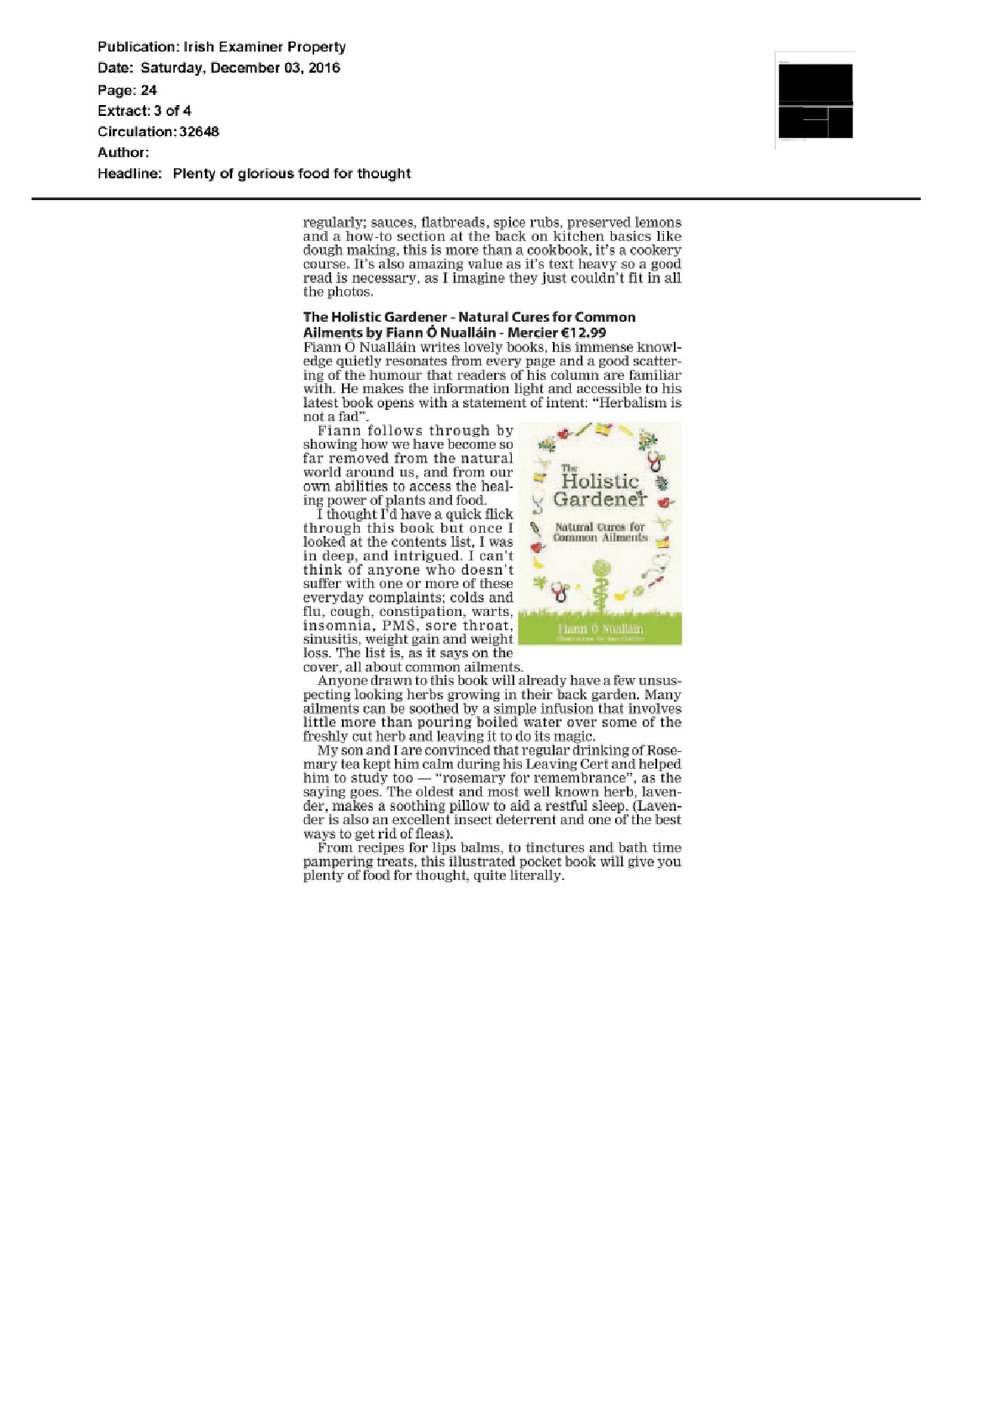 Irish-Examiner-Property,-Page-24,25,-03-Dec-2016-003.jpg